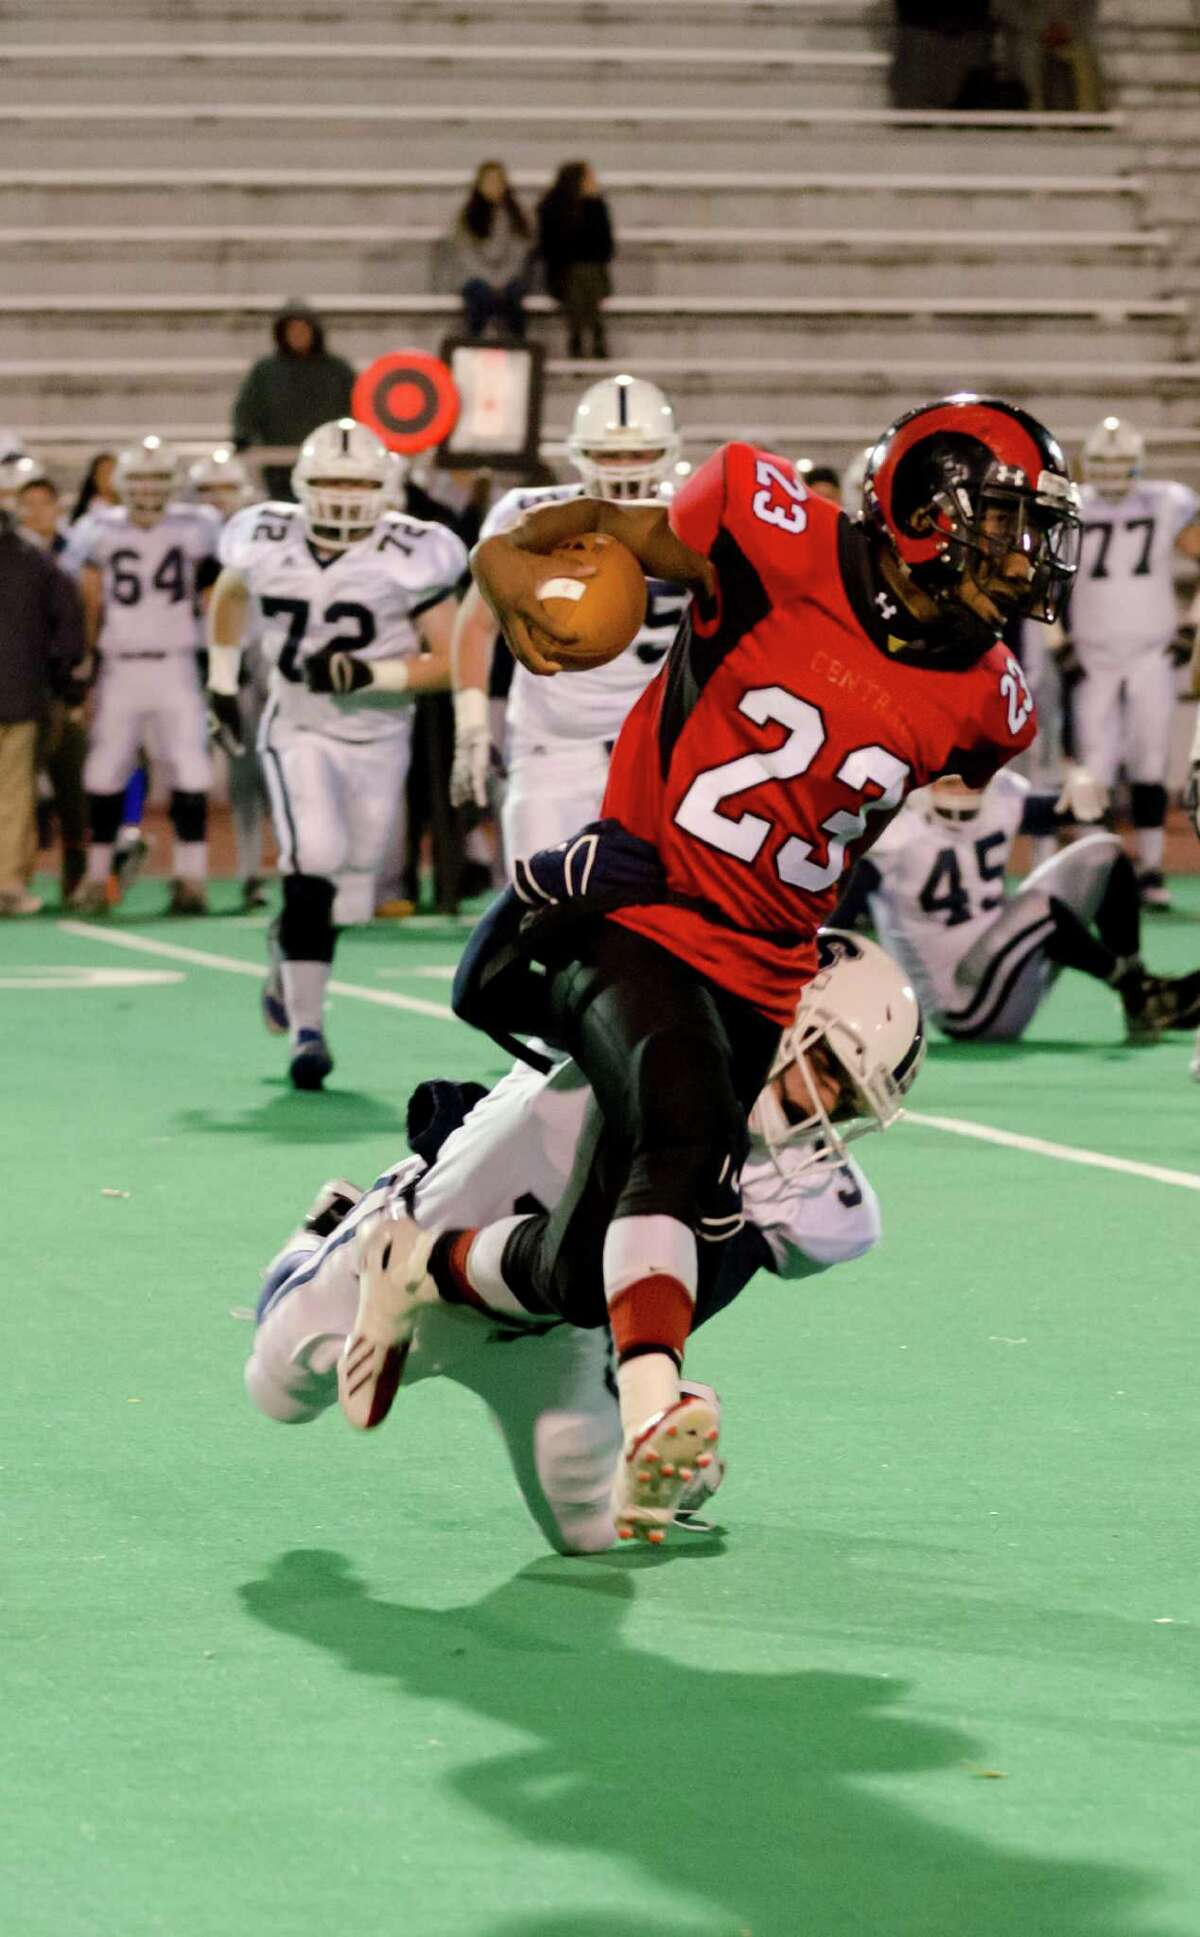 Central's quarterback Mykel Morris (23) carries the ball as Staples' Teddy Coogan (3) defends during the football game at Kennedy Stadium at Central High School in Bridgeport on Friday, Nov. 8, 2013